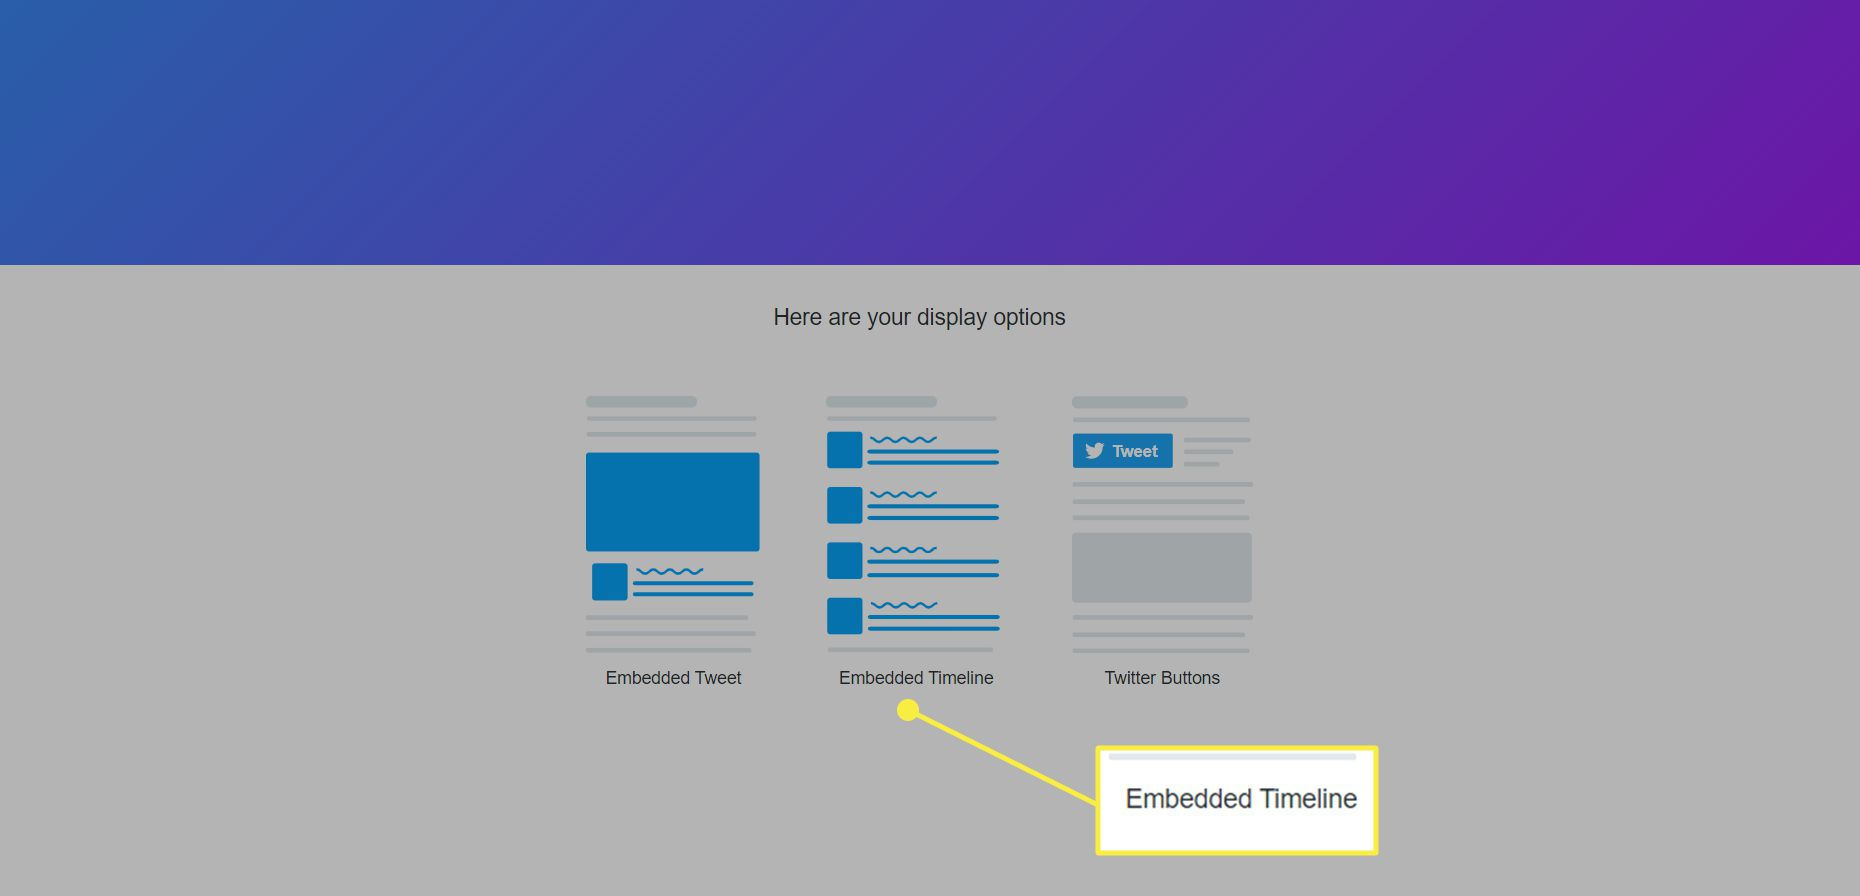 The display options for Twitter Publish with 'Embedded Timeline' highlighted